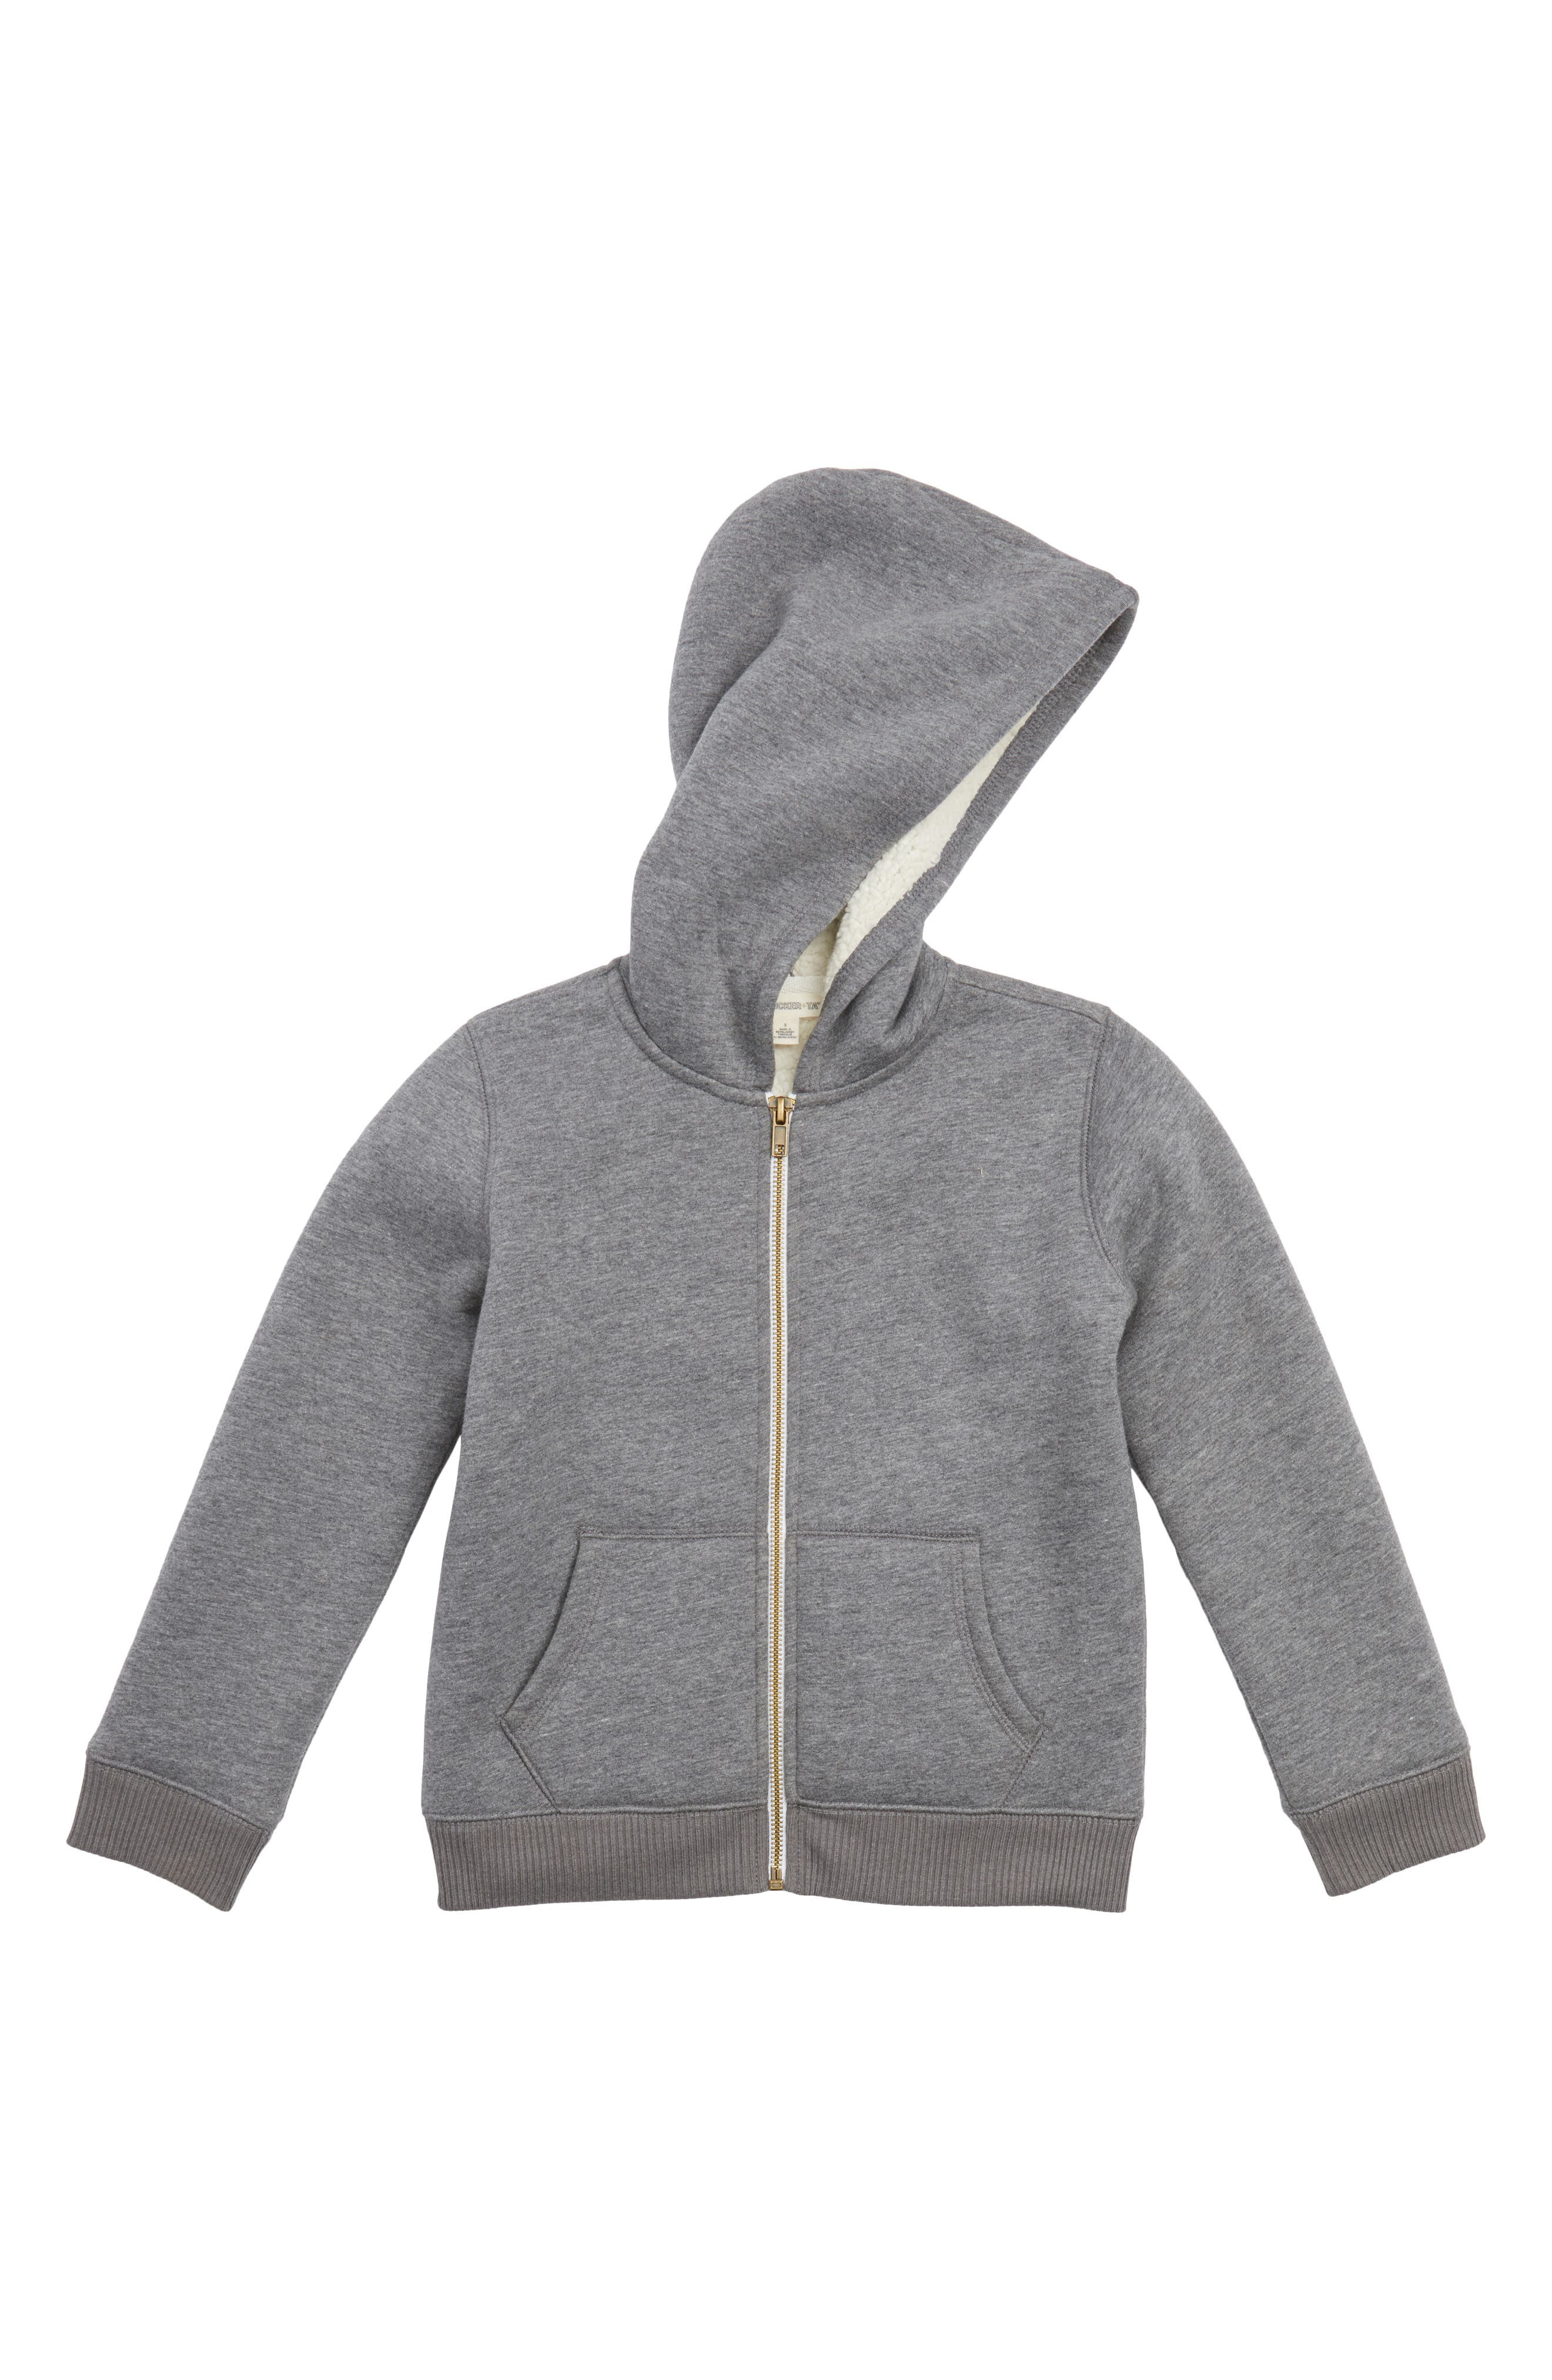 Tucker + Tate Plush Lined Zip Hoodie (Toddler Boys & Little Boys)